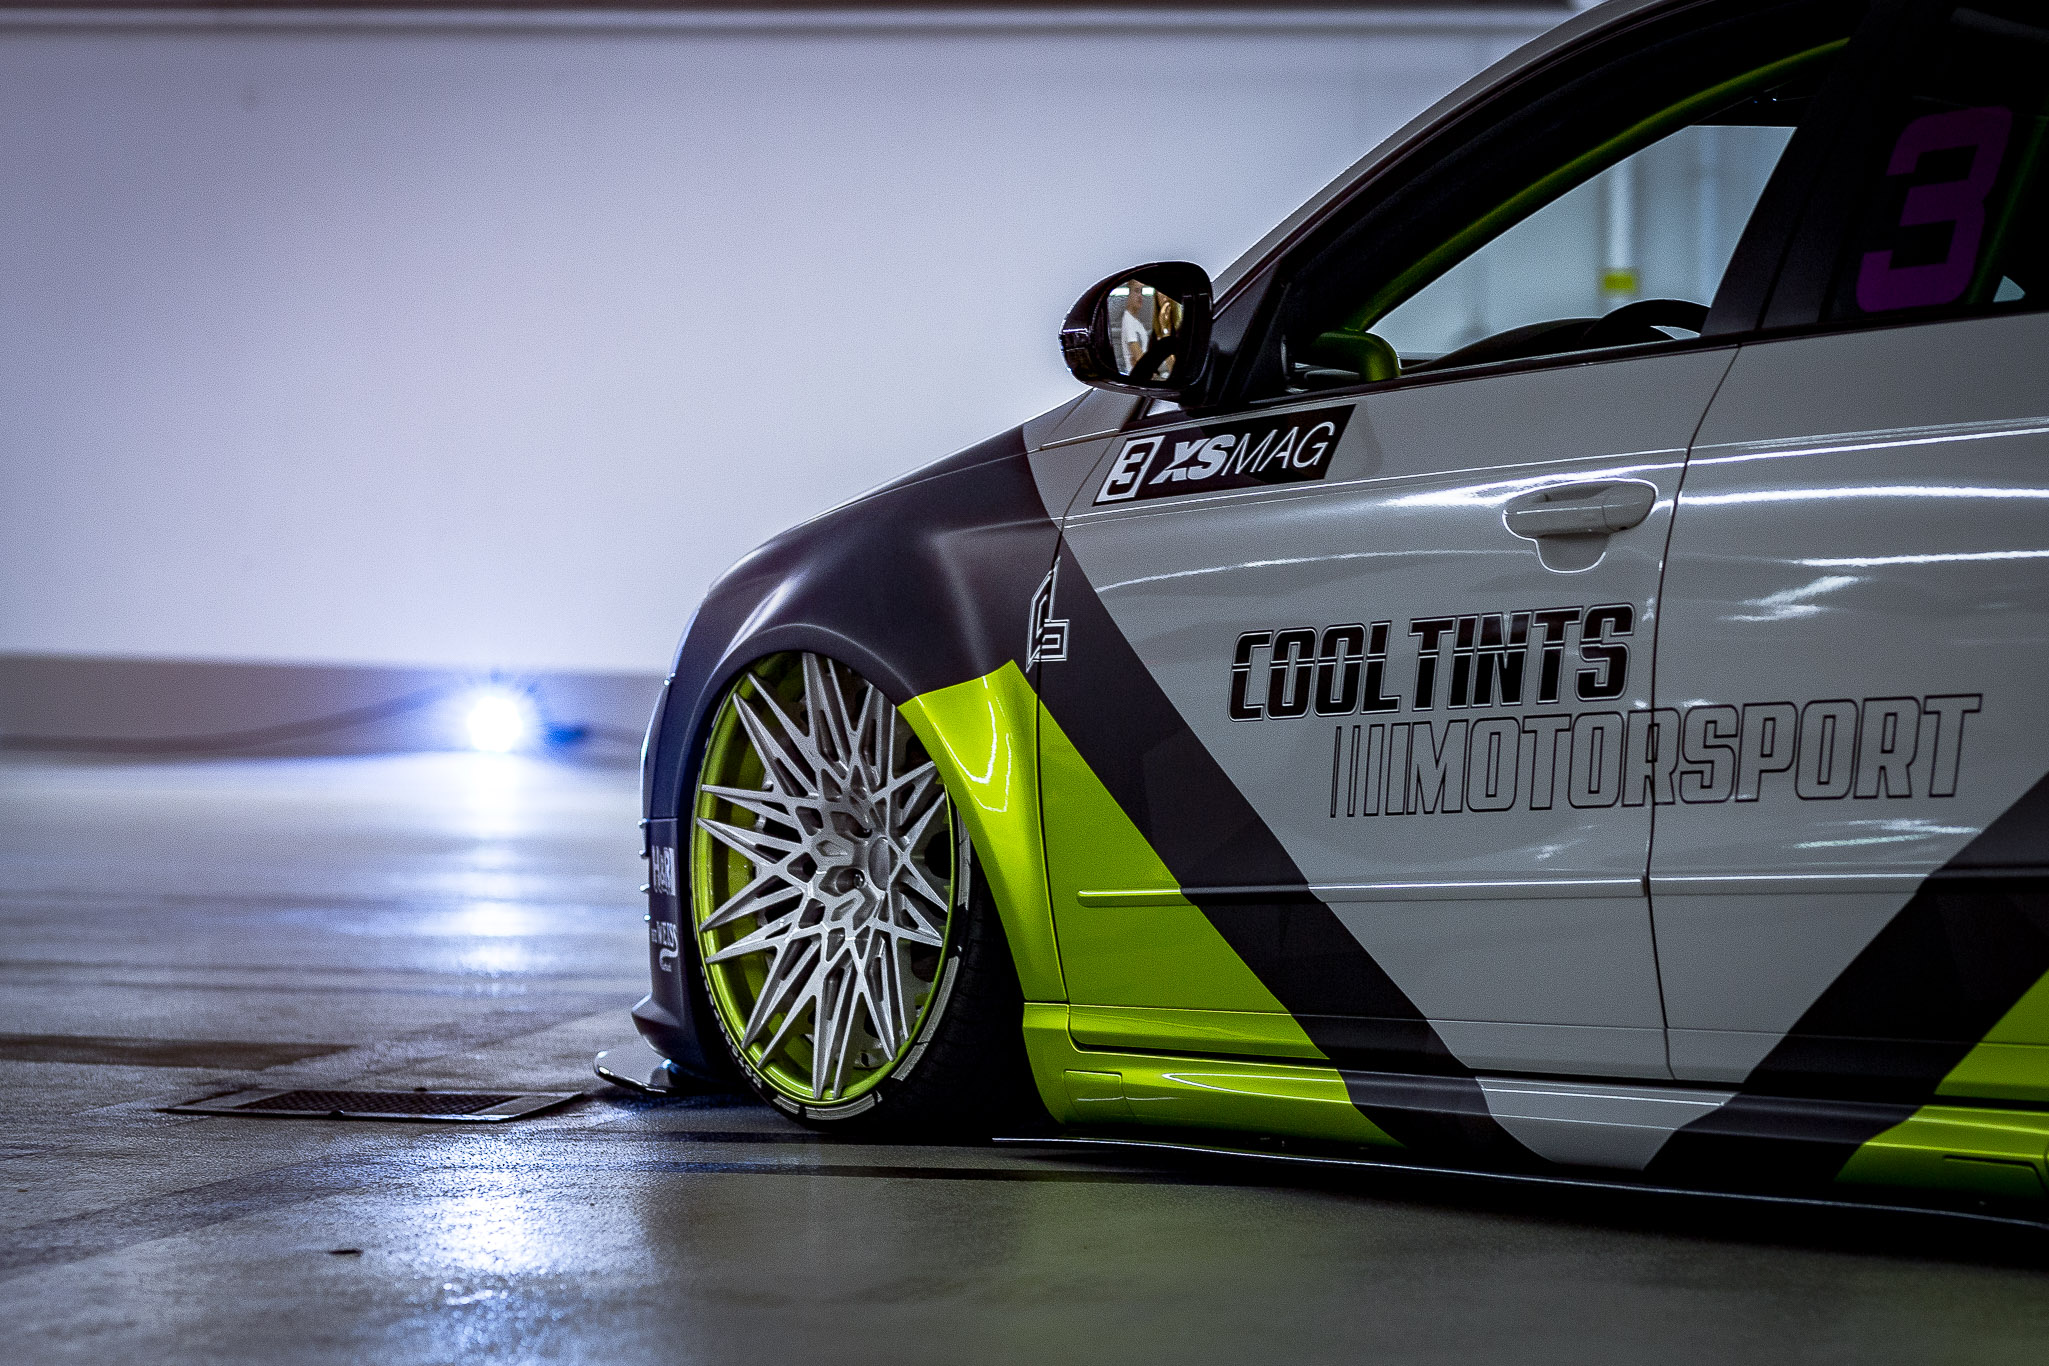 ftsv3Automotive013_cooltints_motorsport